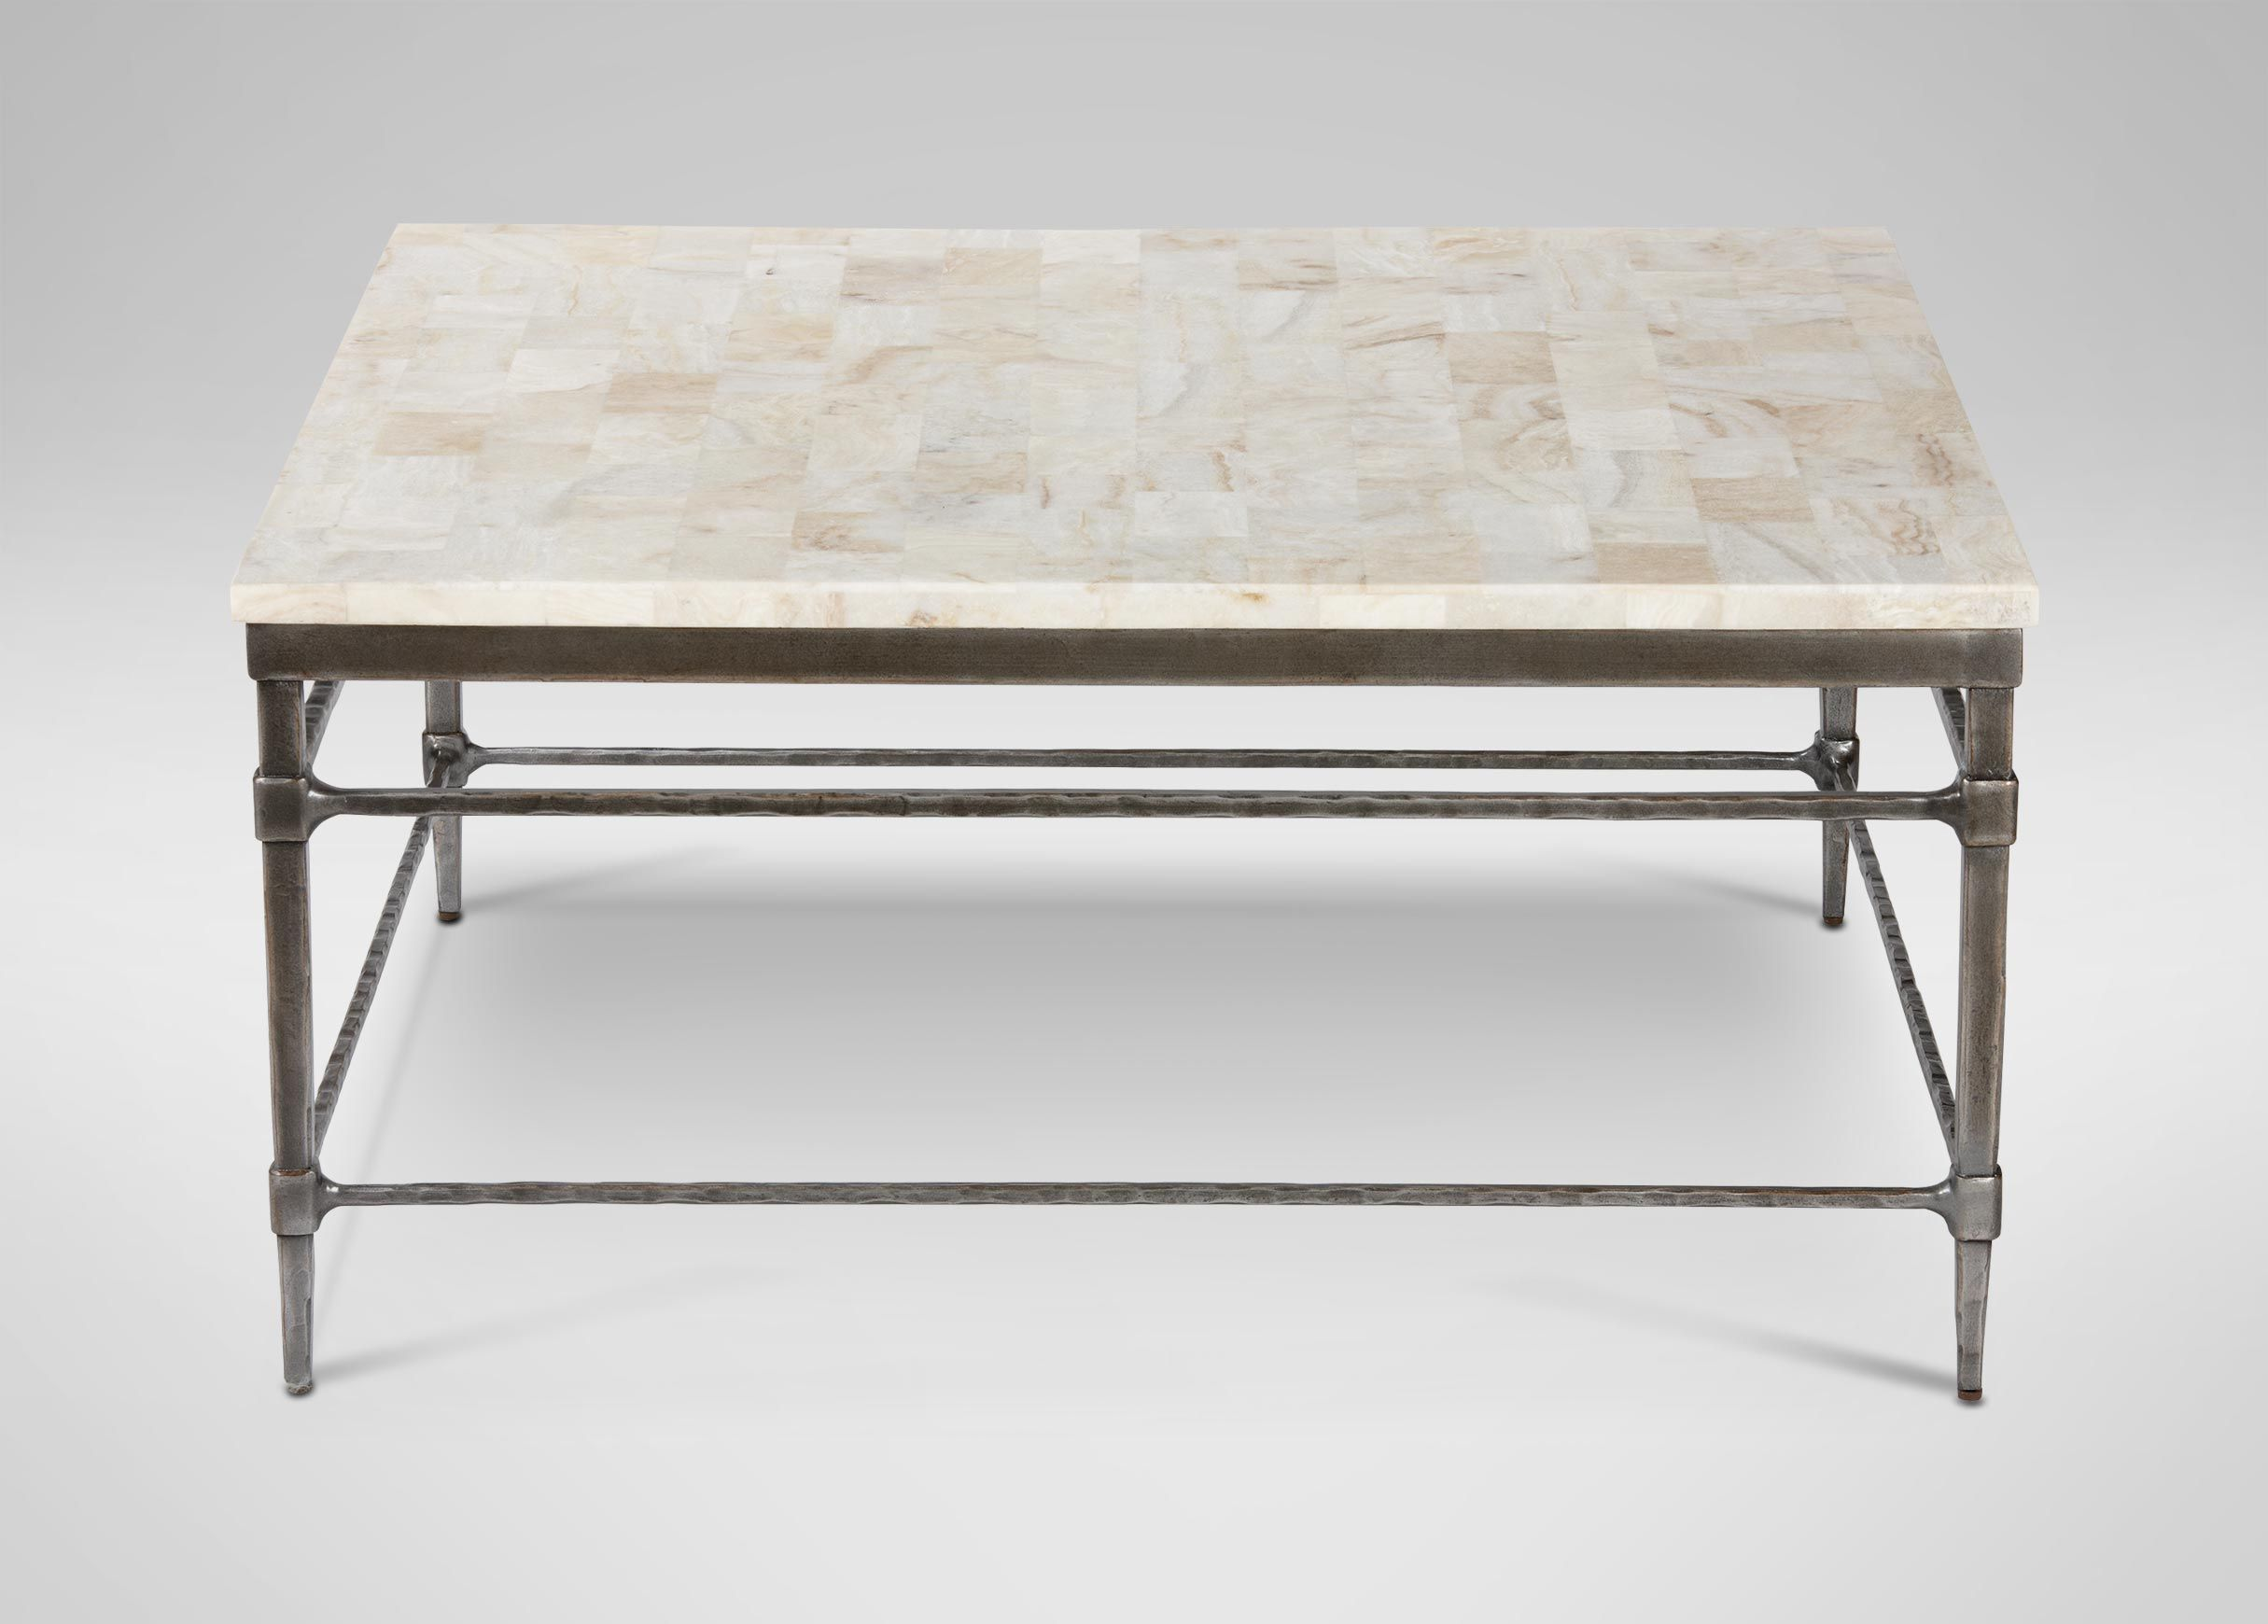 Ethan allen vida square stone top coffee table item138342s 127 ethan allen vida square stone top coffee table item138342s 127 129900 38 geotapseo Gallery